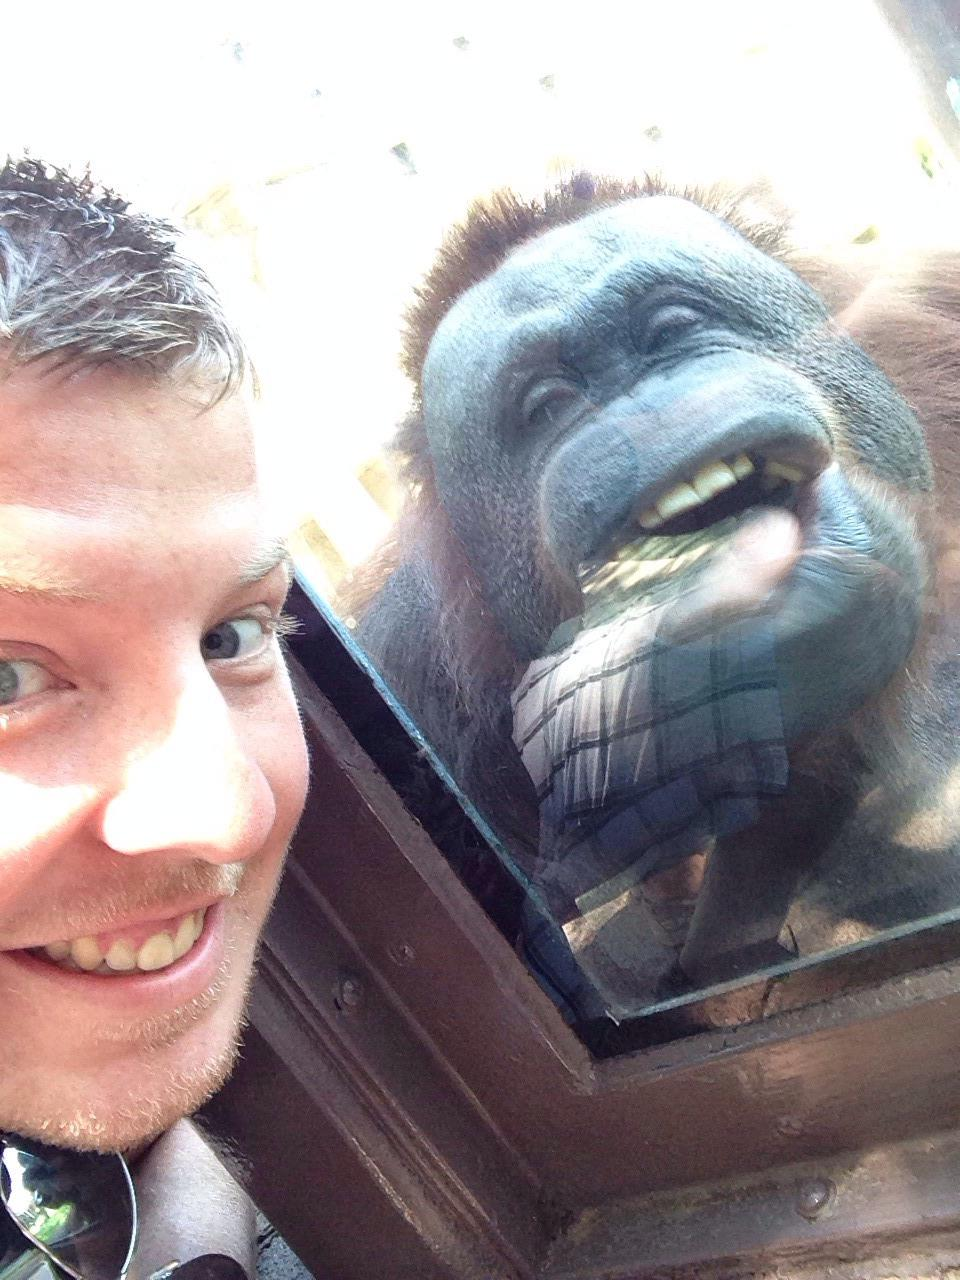 People Making Friends at the Zoo (14 Photos)